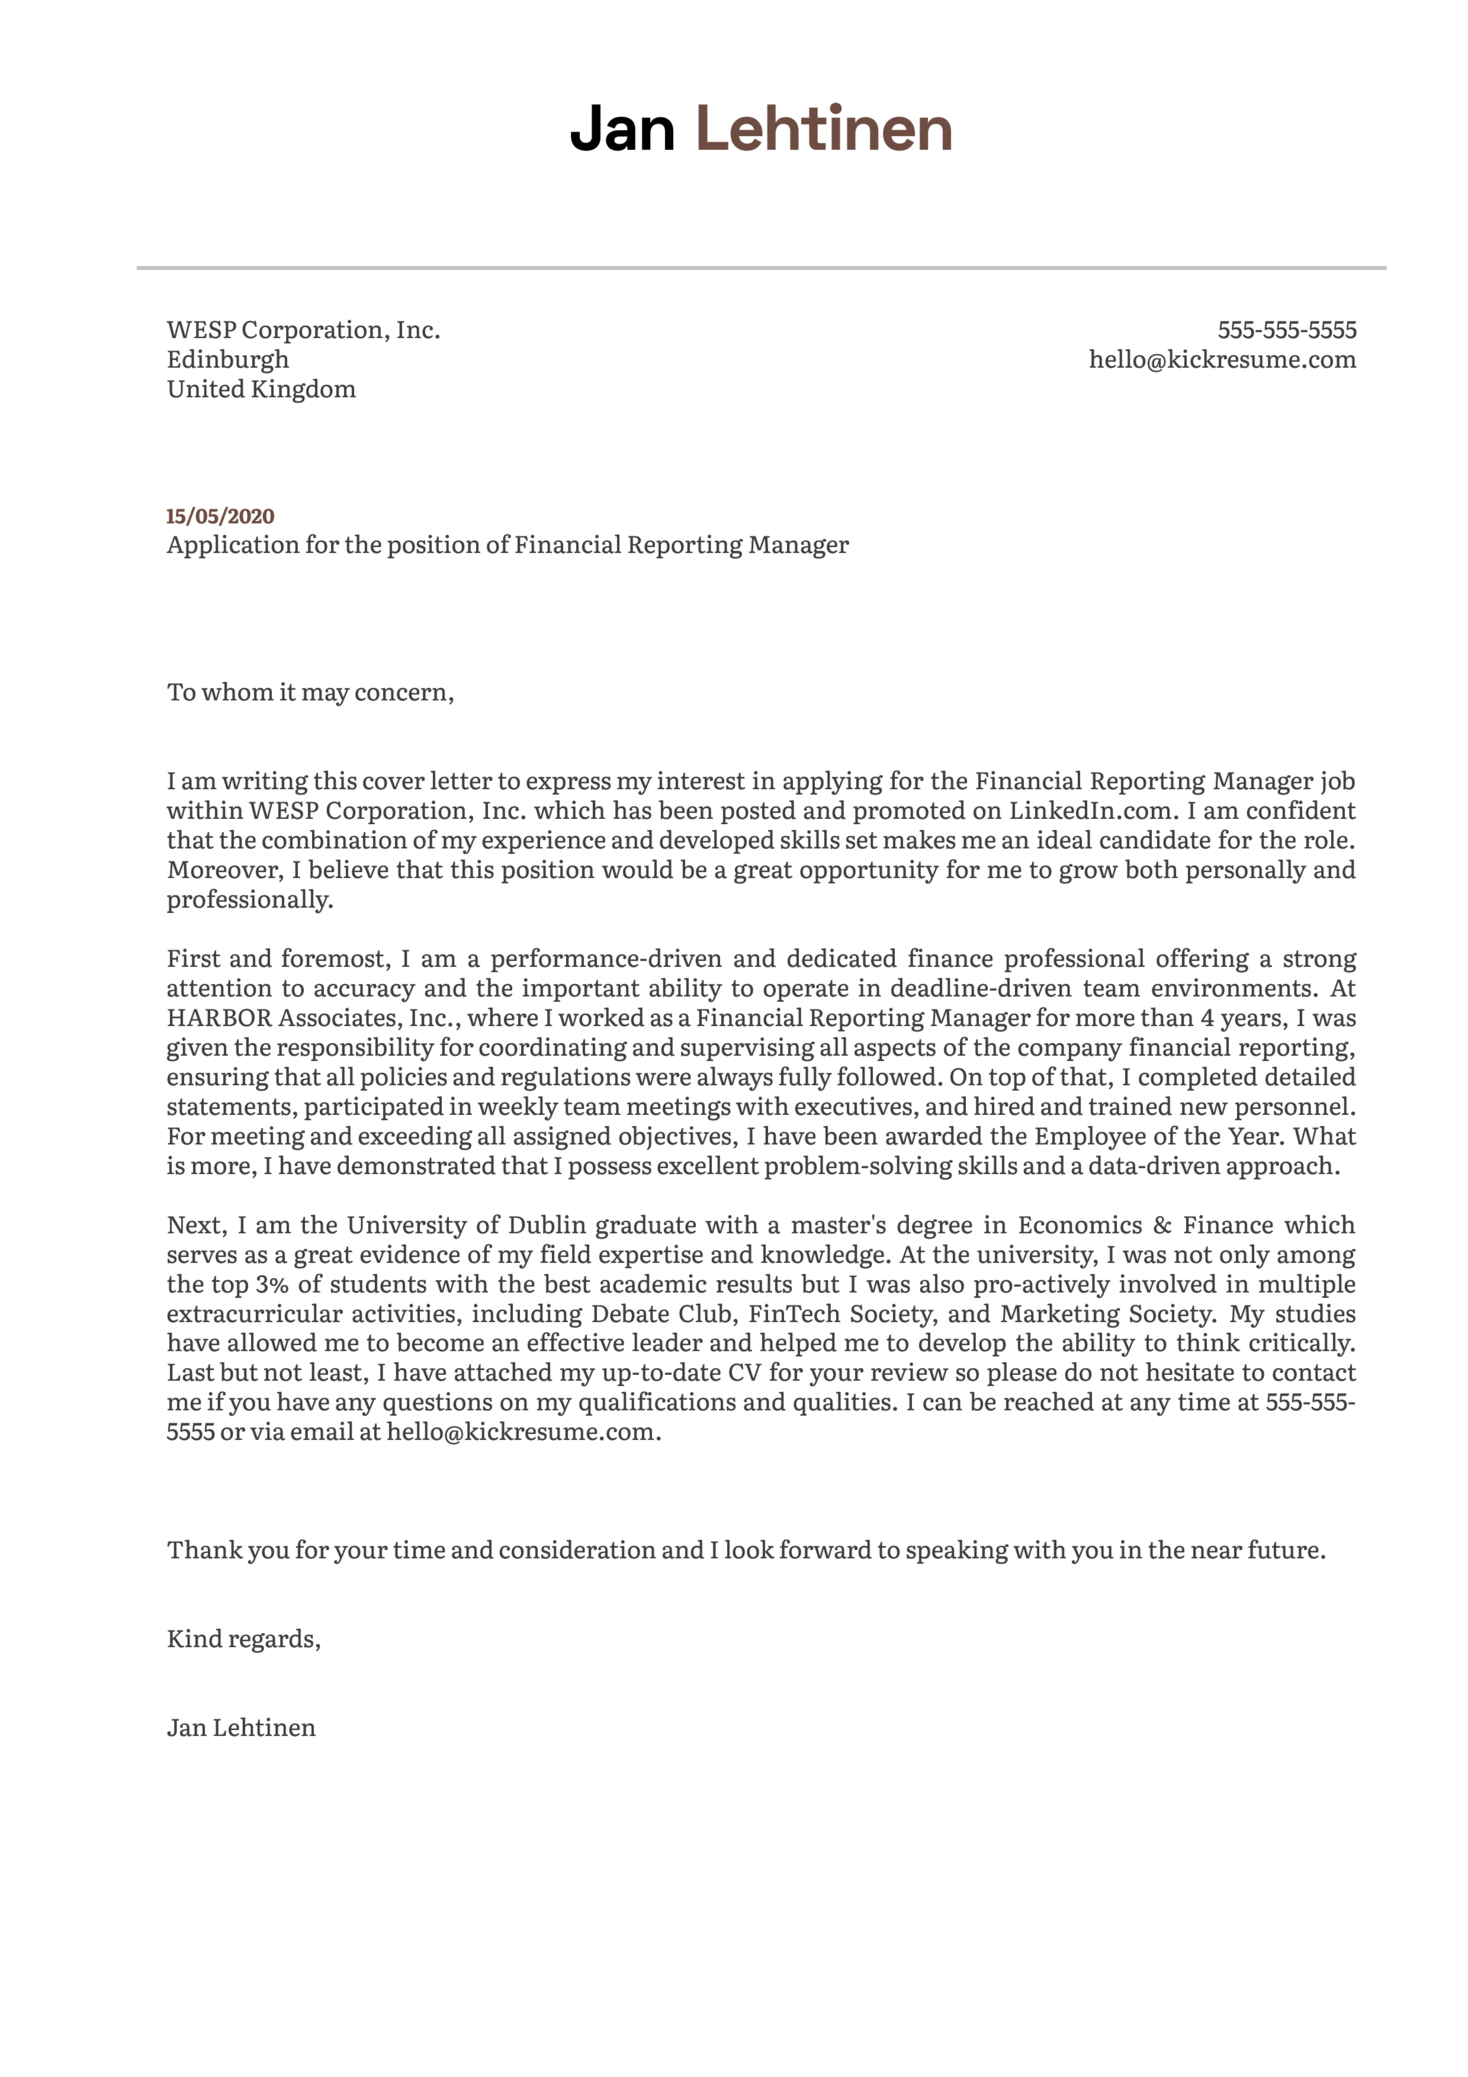 Financial Reporting Manager Cover Letter Sample